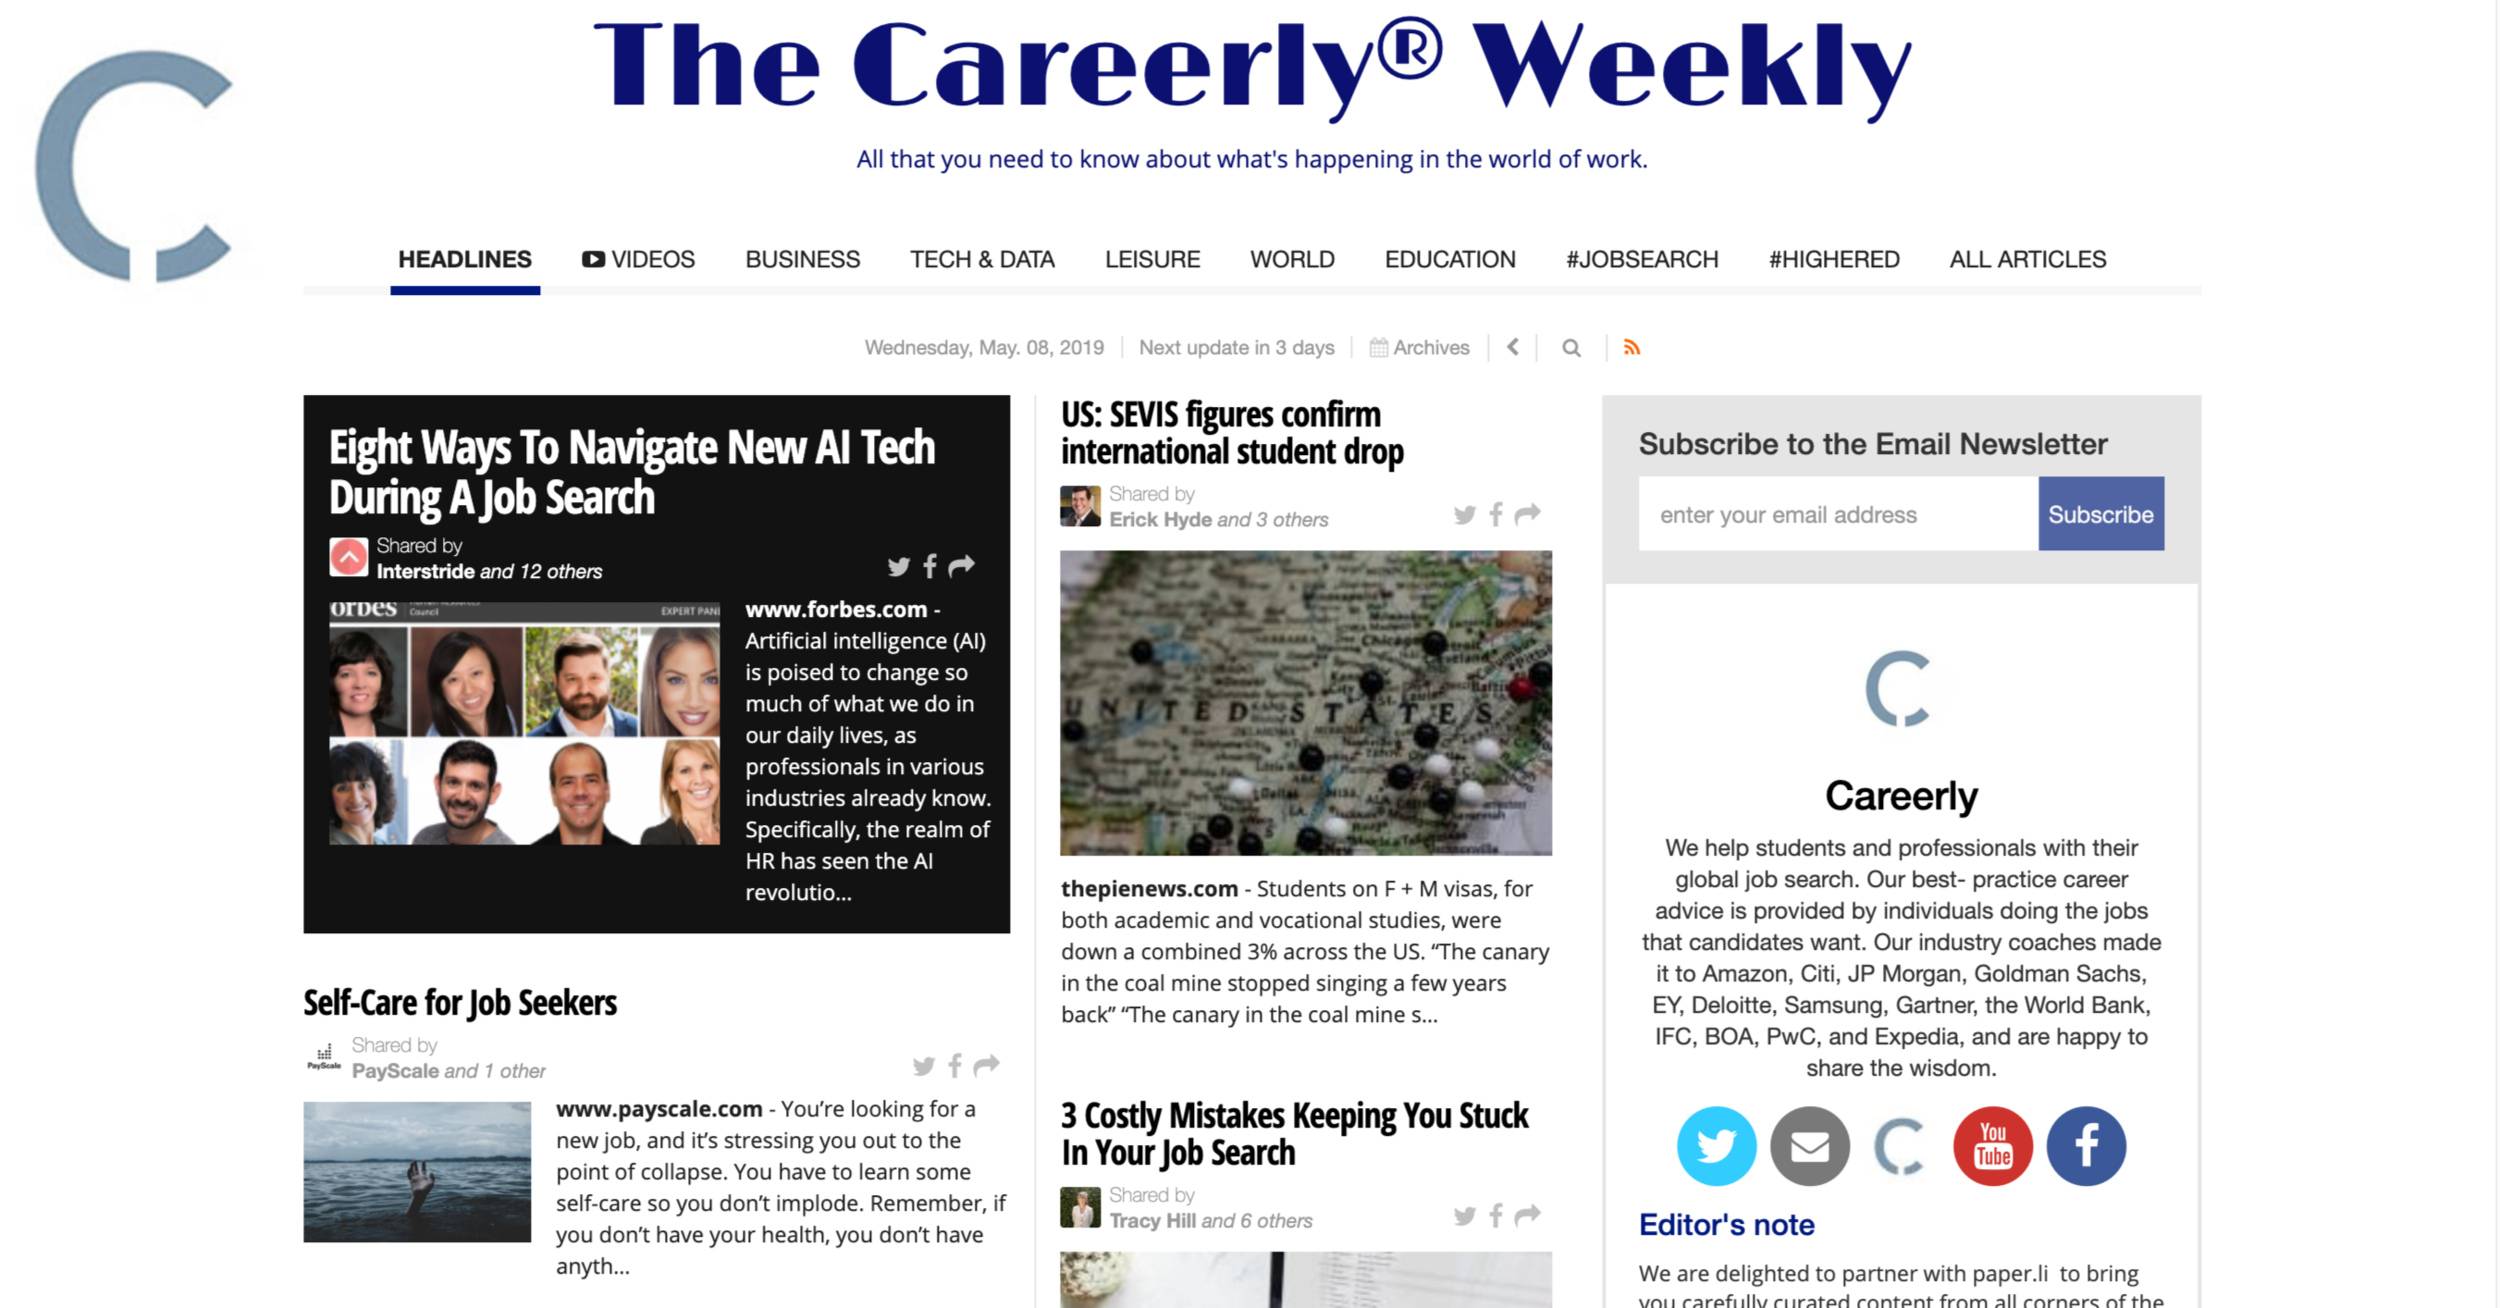 #Jobs & #careers headlines from around the world. - Every Wednesday 5.00 am EST